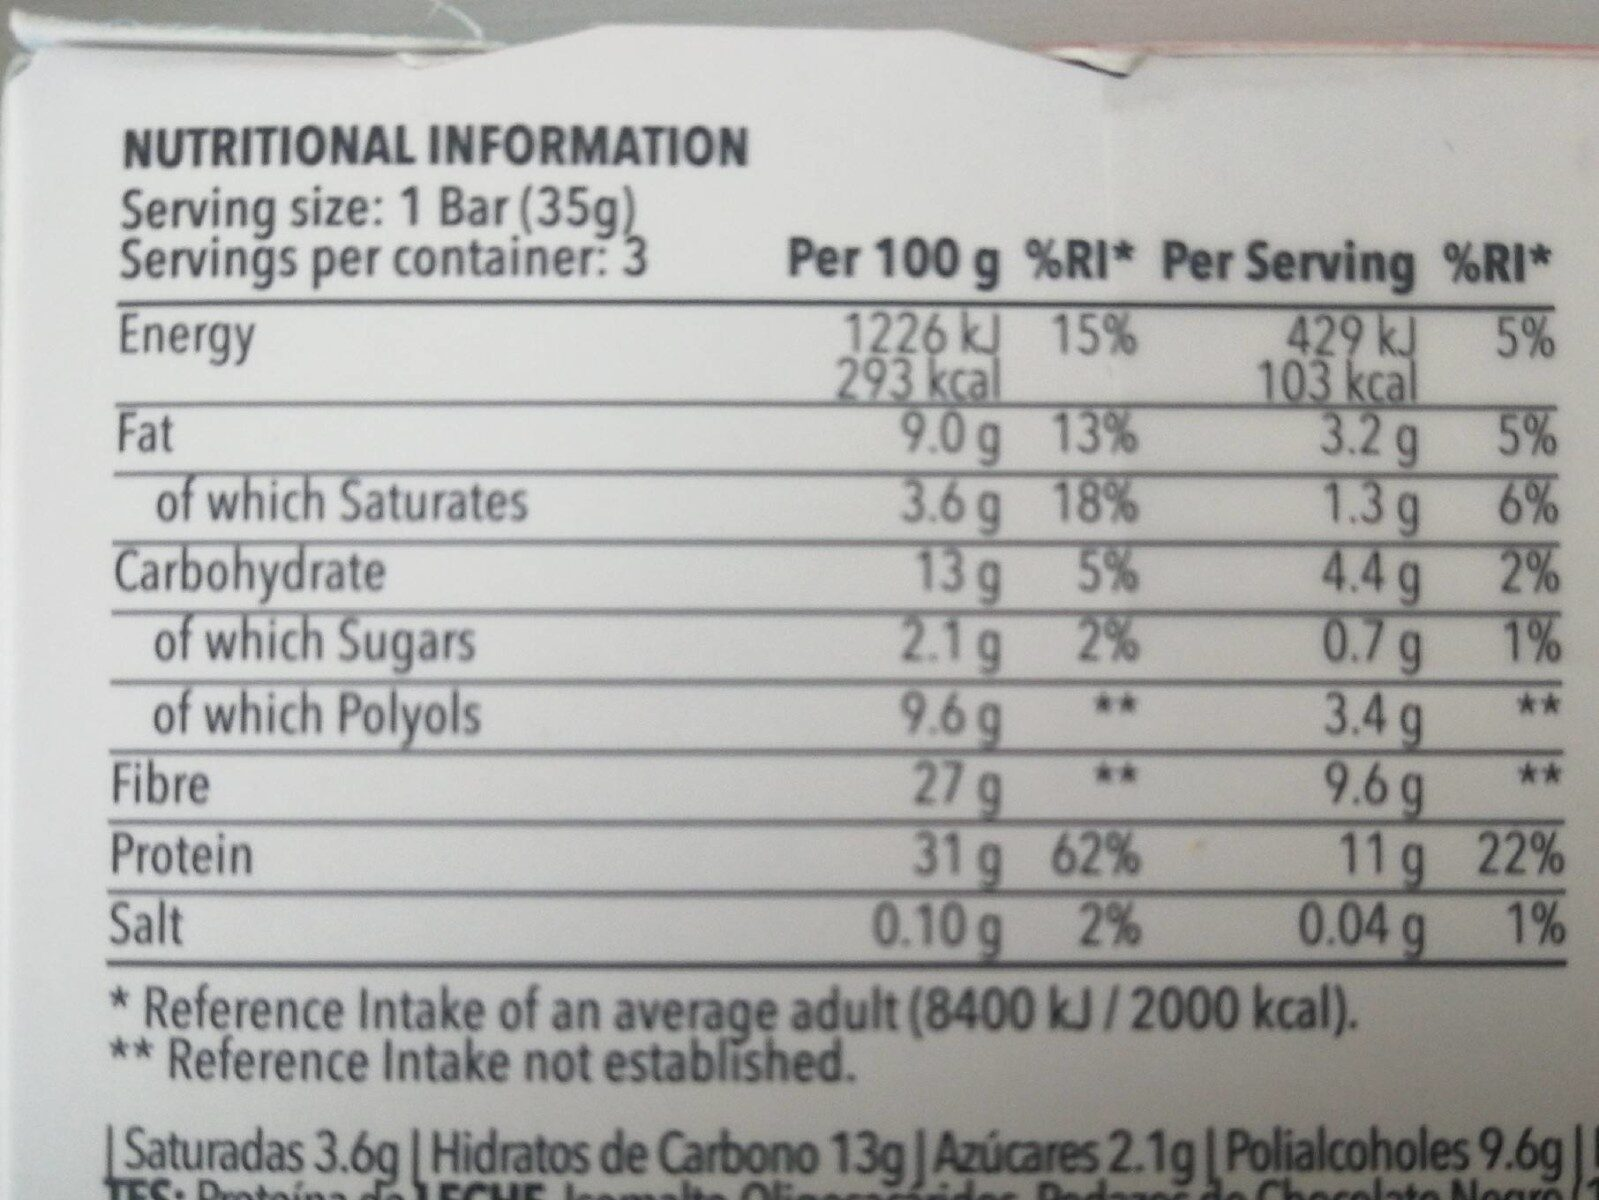 Diet bar peite de chocolate chip - Información nutricional - fr